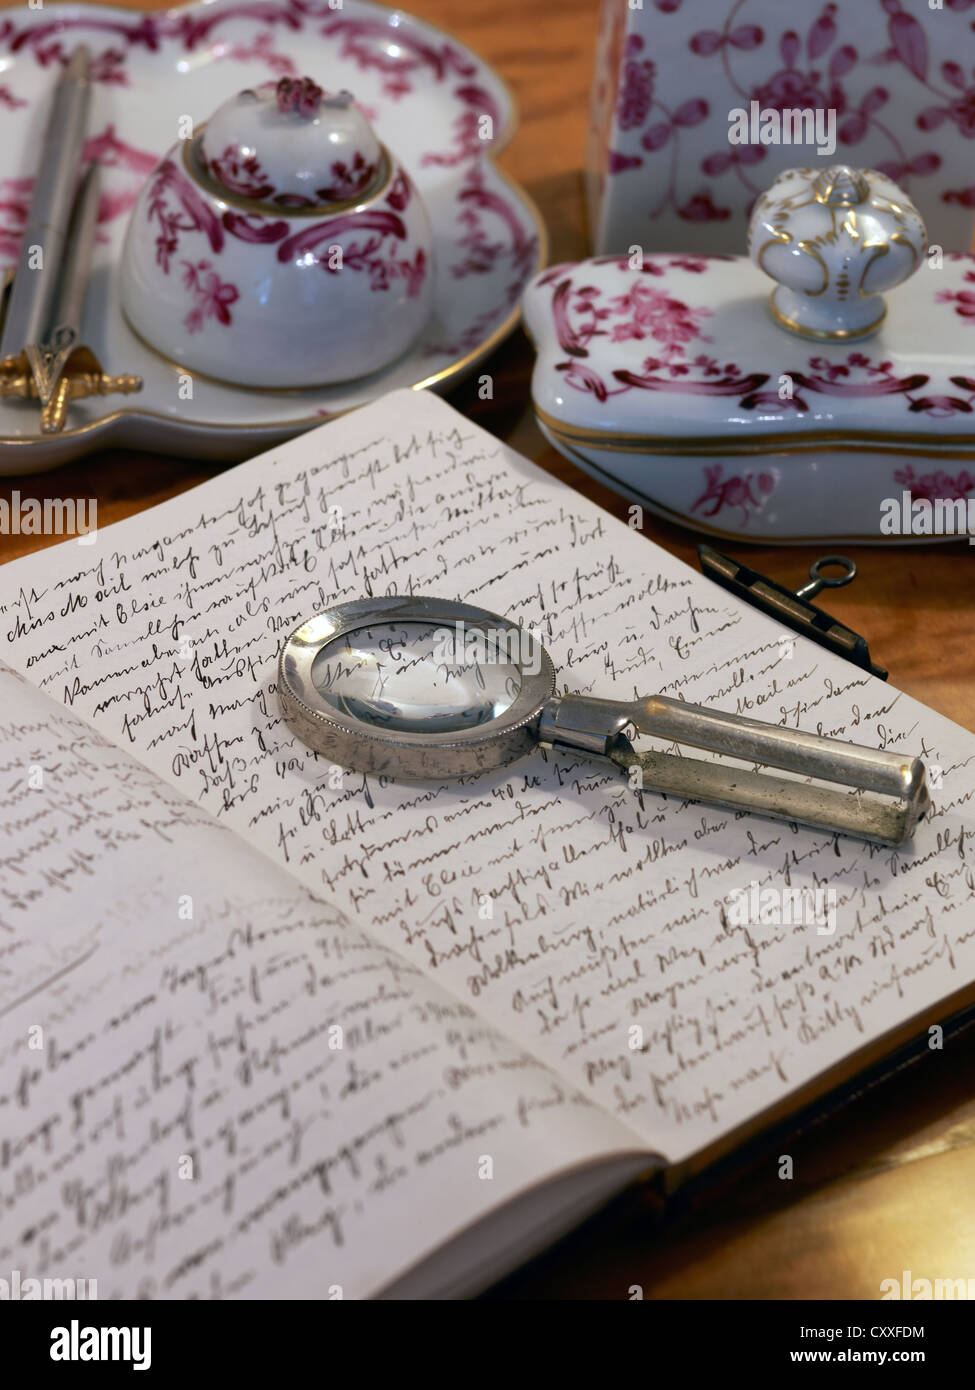 Still life with a handwritten diary, magnifying glass and antique bone china accessories - Stock Image